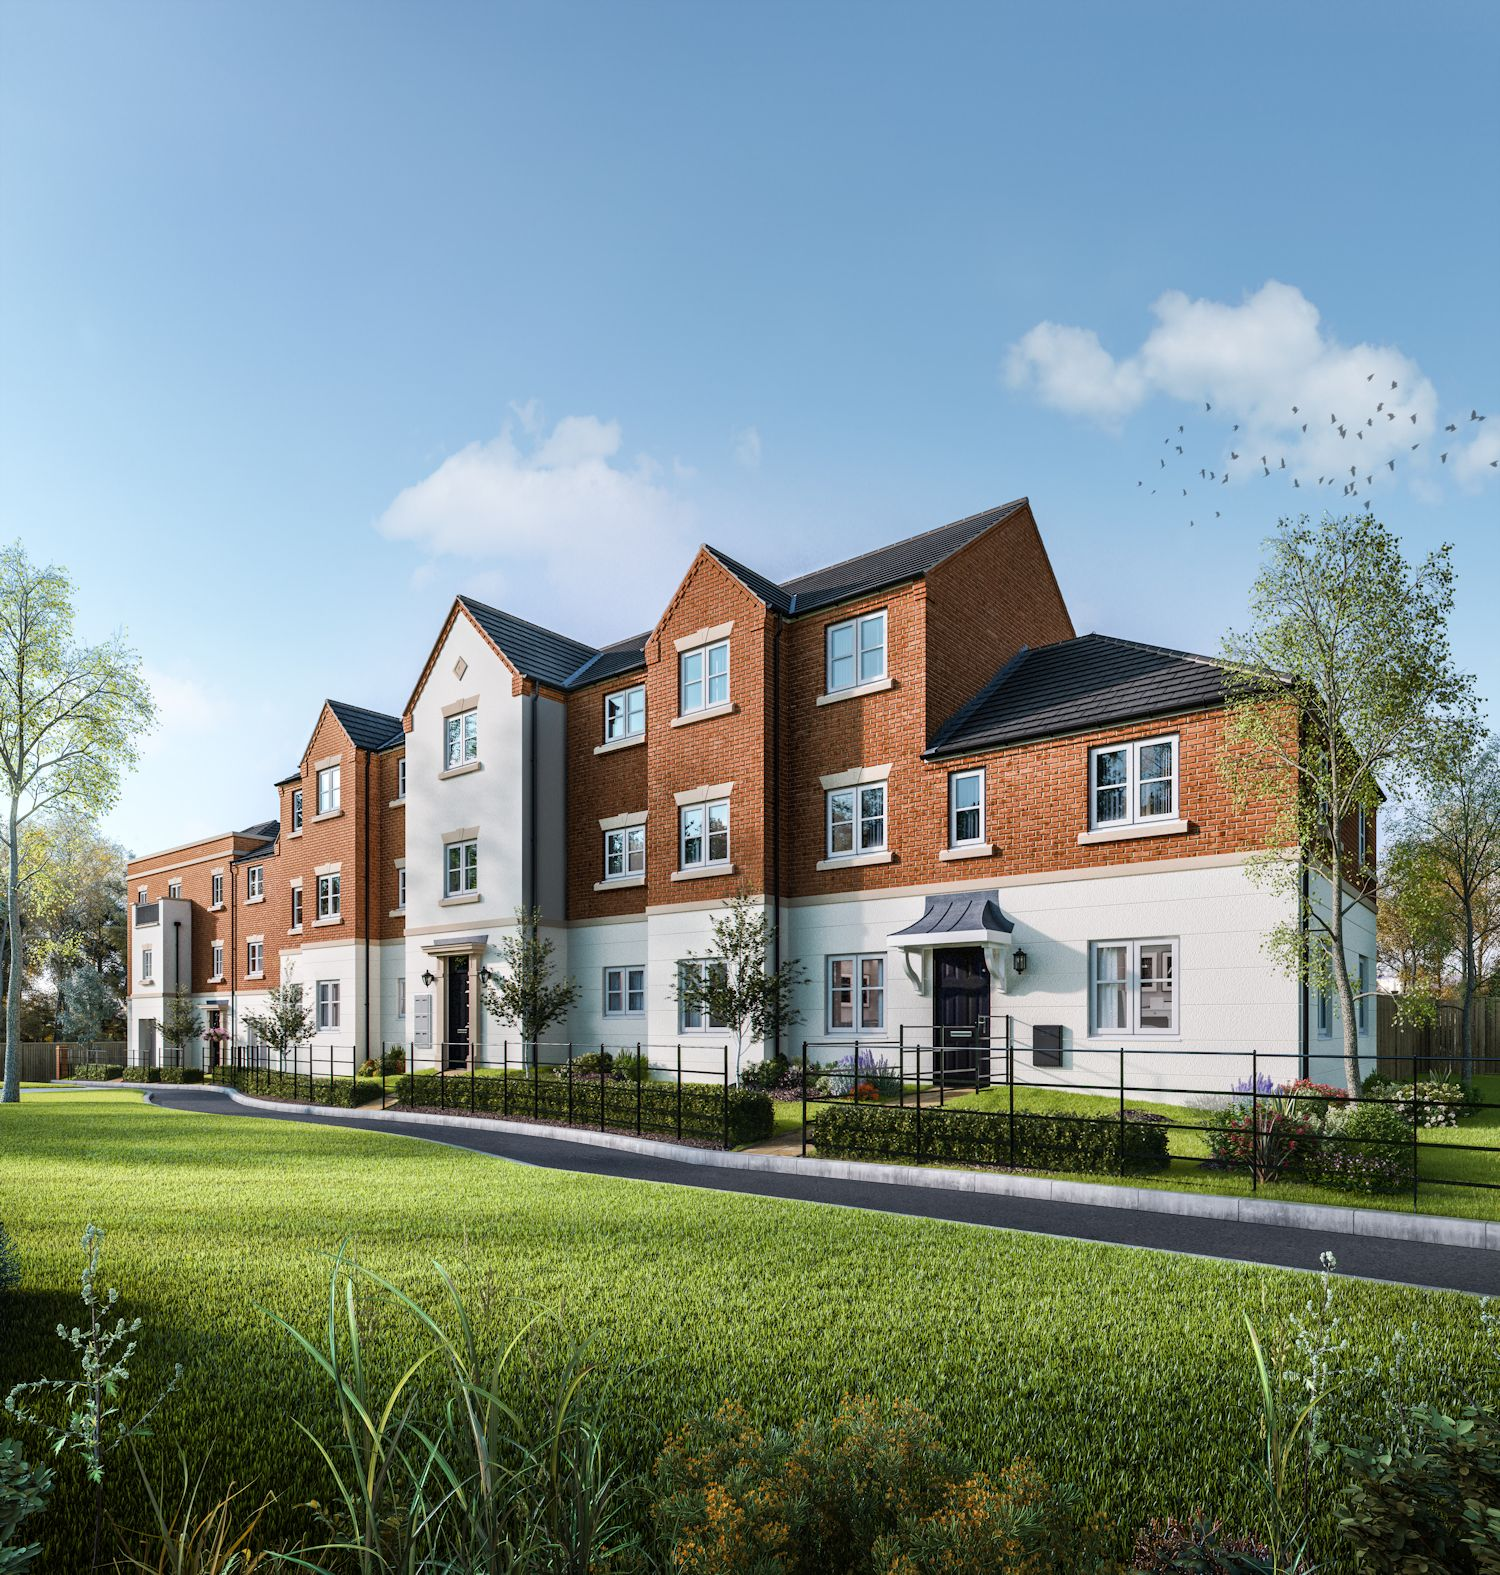 New Homes For Sale In The Spires